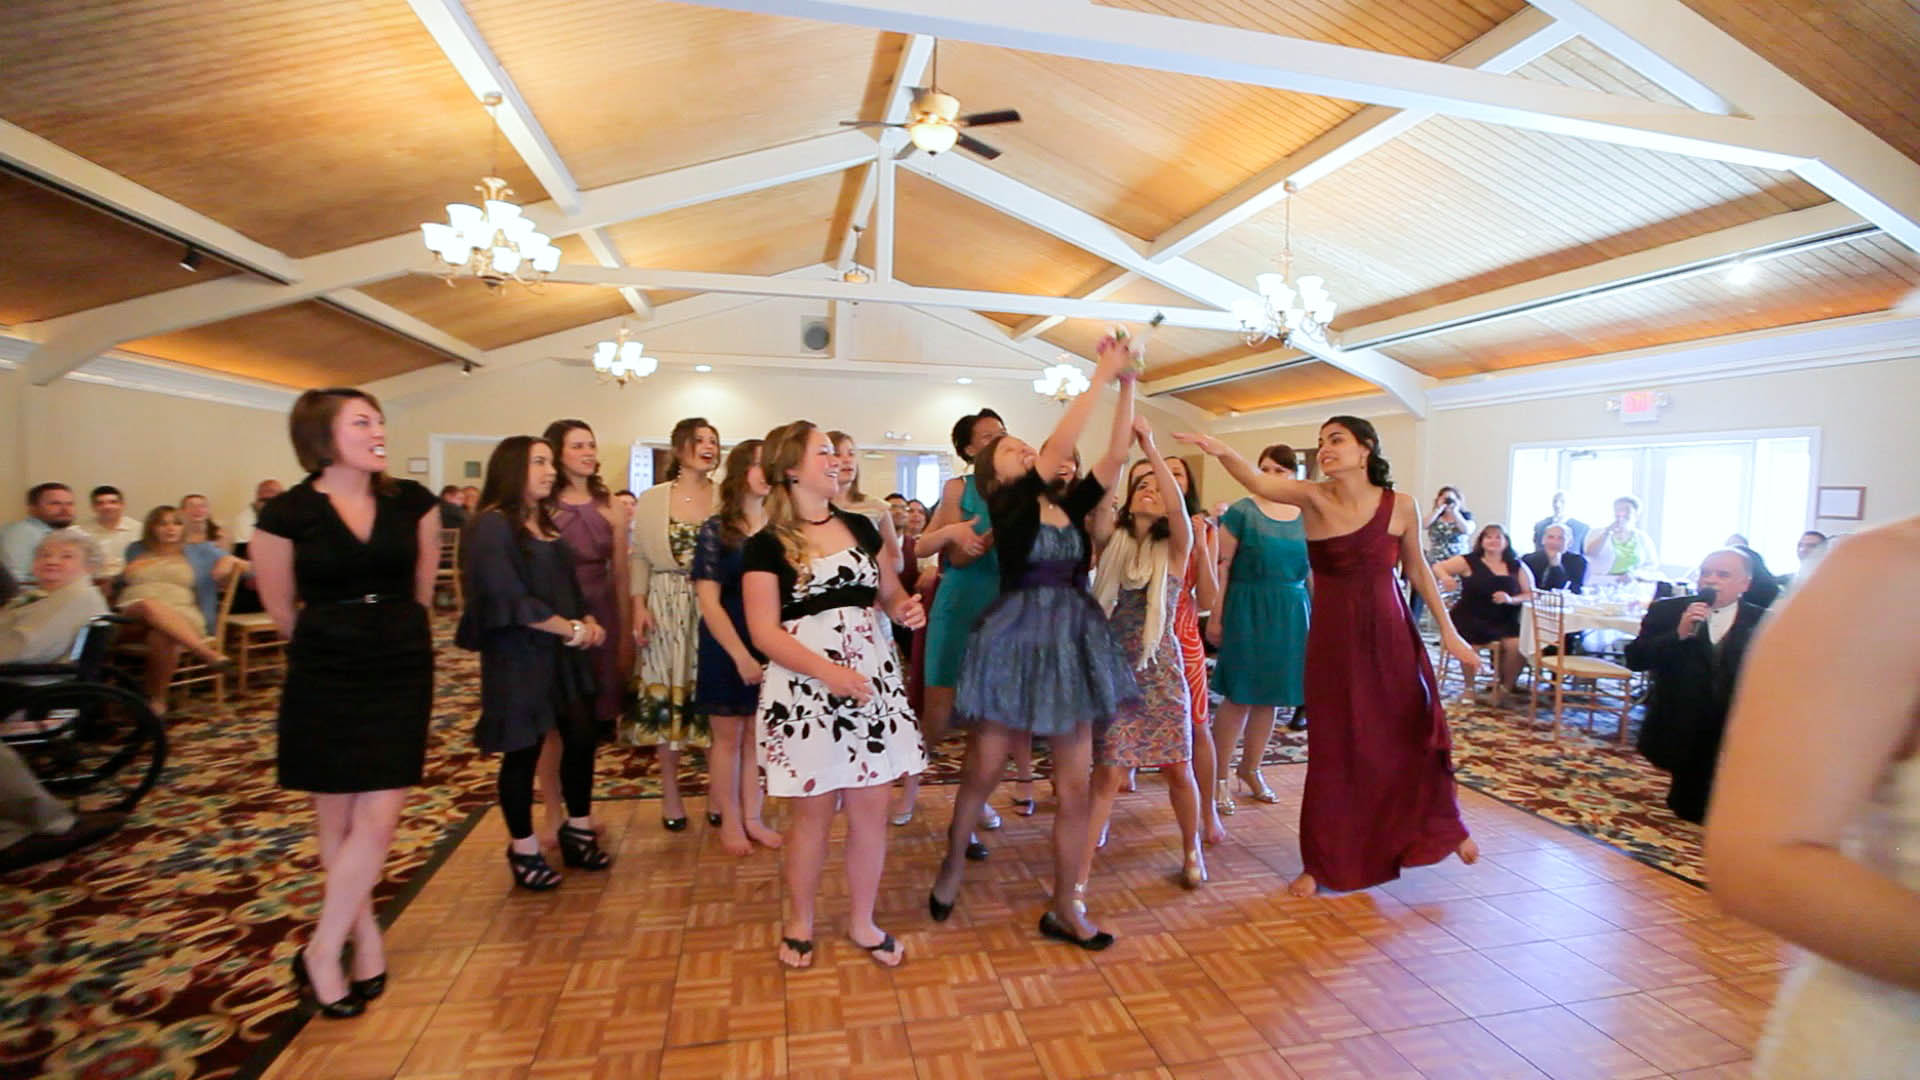 Hyatt At The Bellvue Wedding Images Bouquet Toss Photo